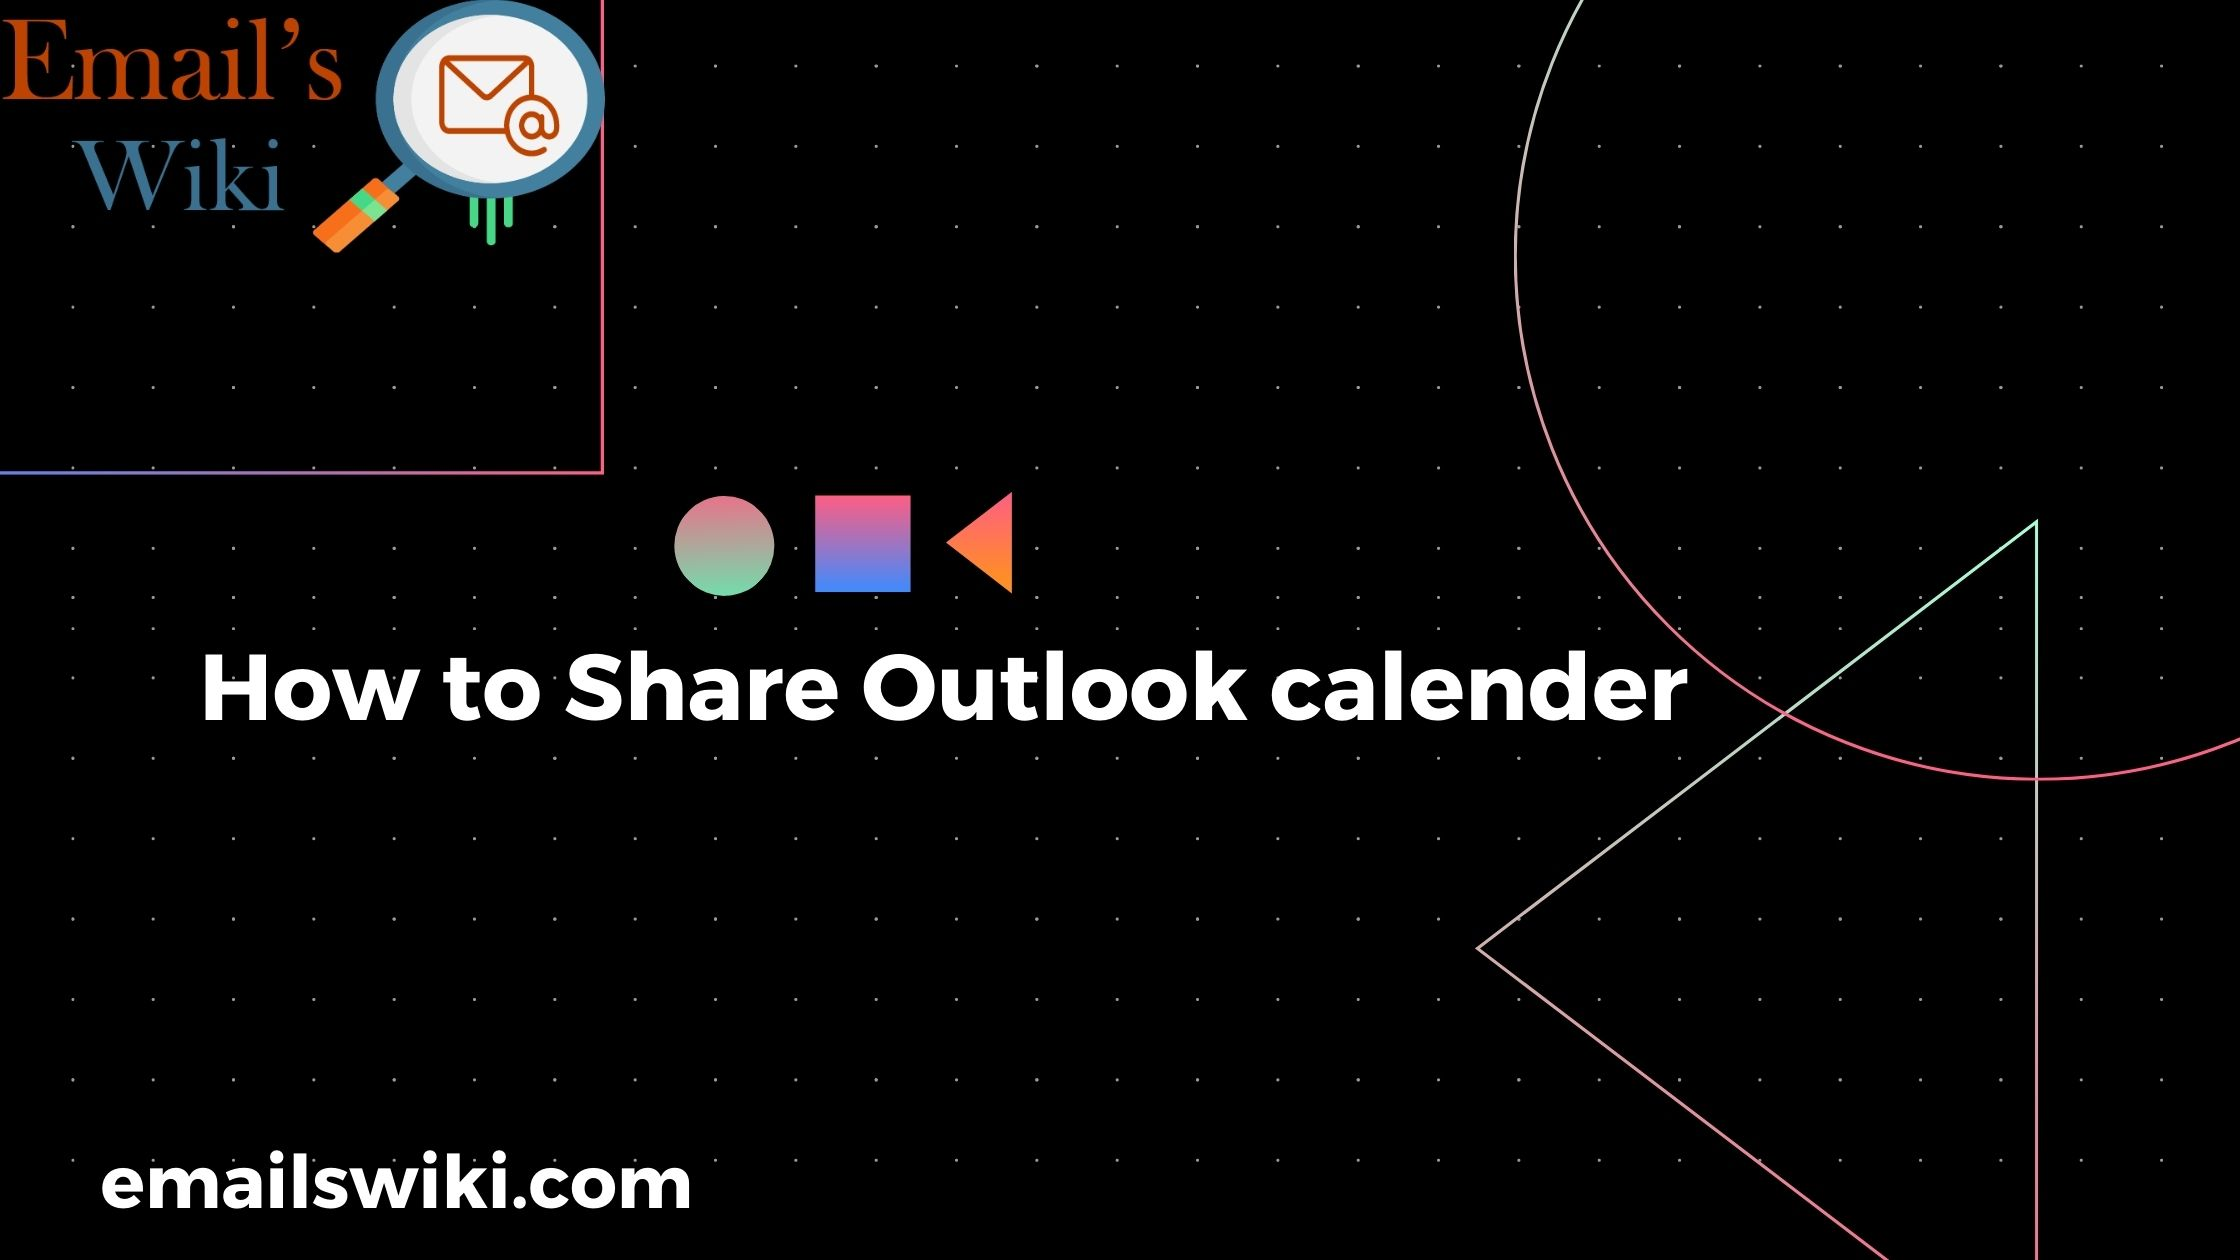 Share ouloook calender